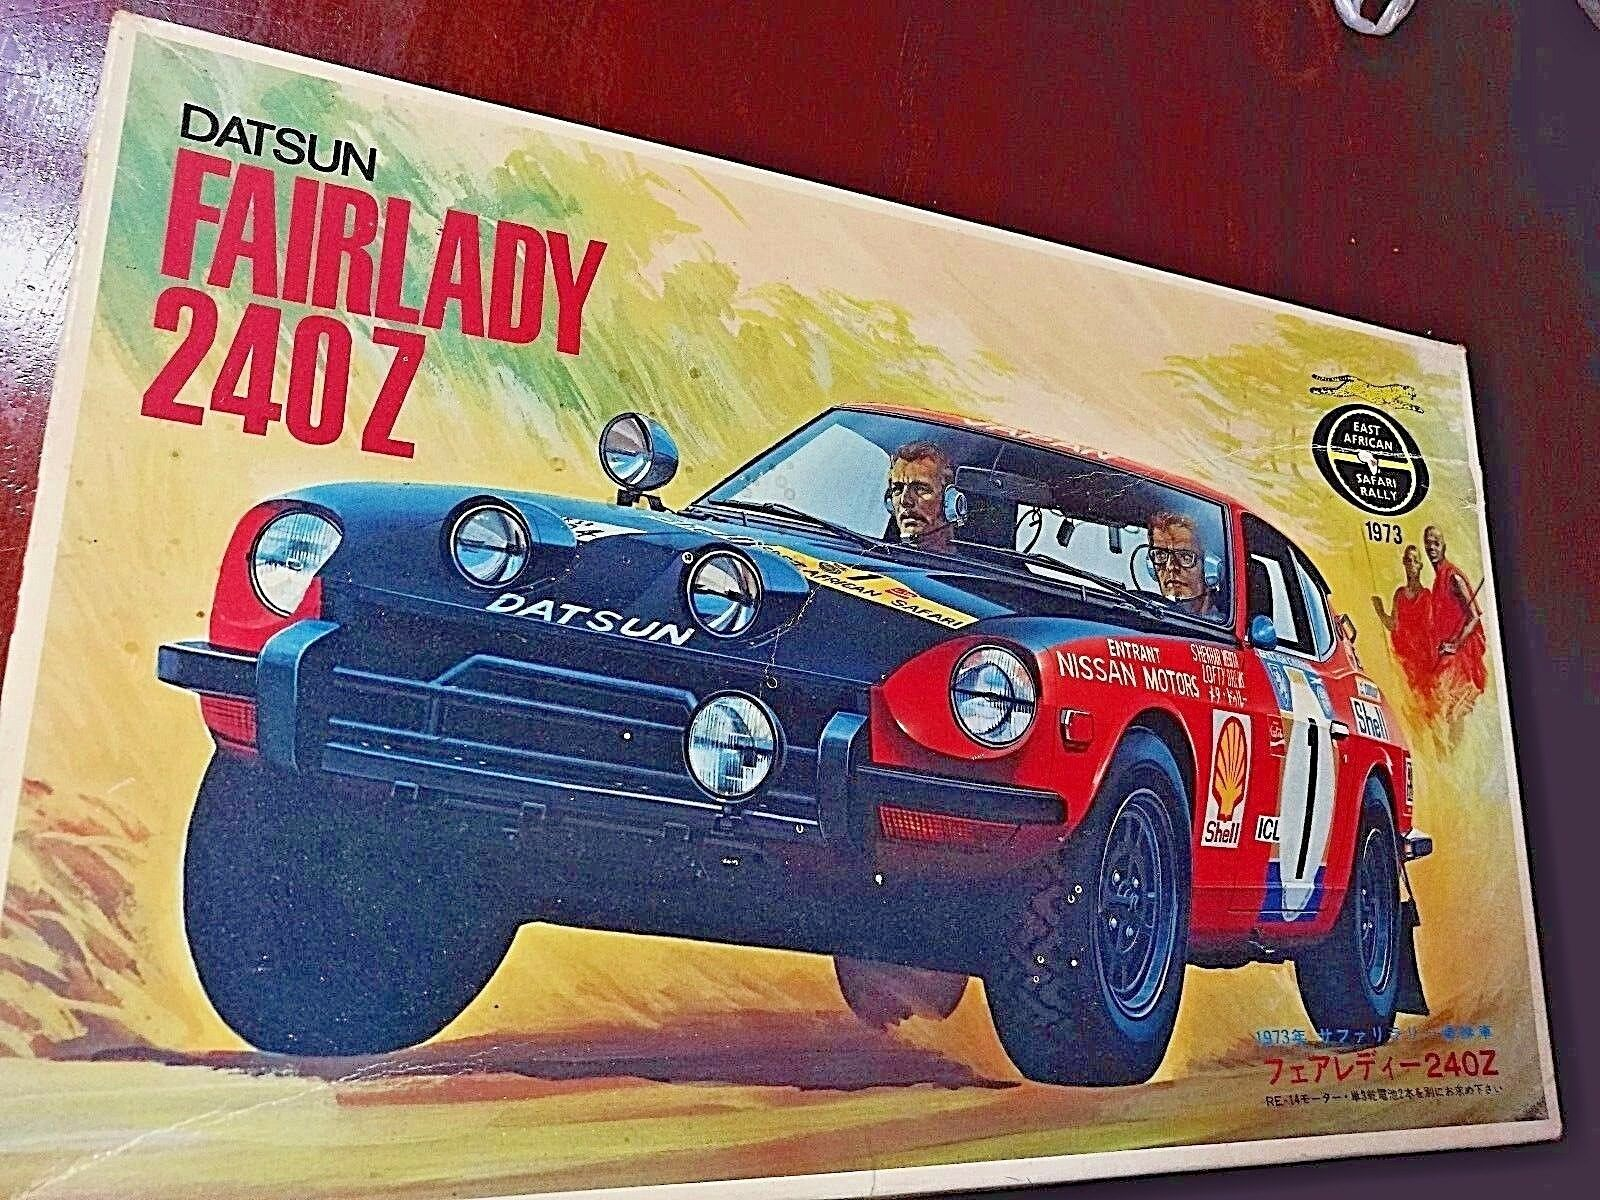 FAIRLADY 240Z Sheka Metar 1973 SAFARI RALLY WINNER Limited Edition 1 20 FUJIMI